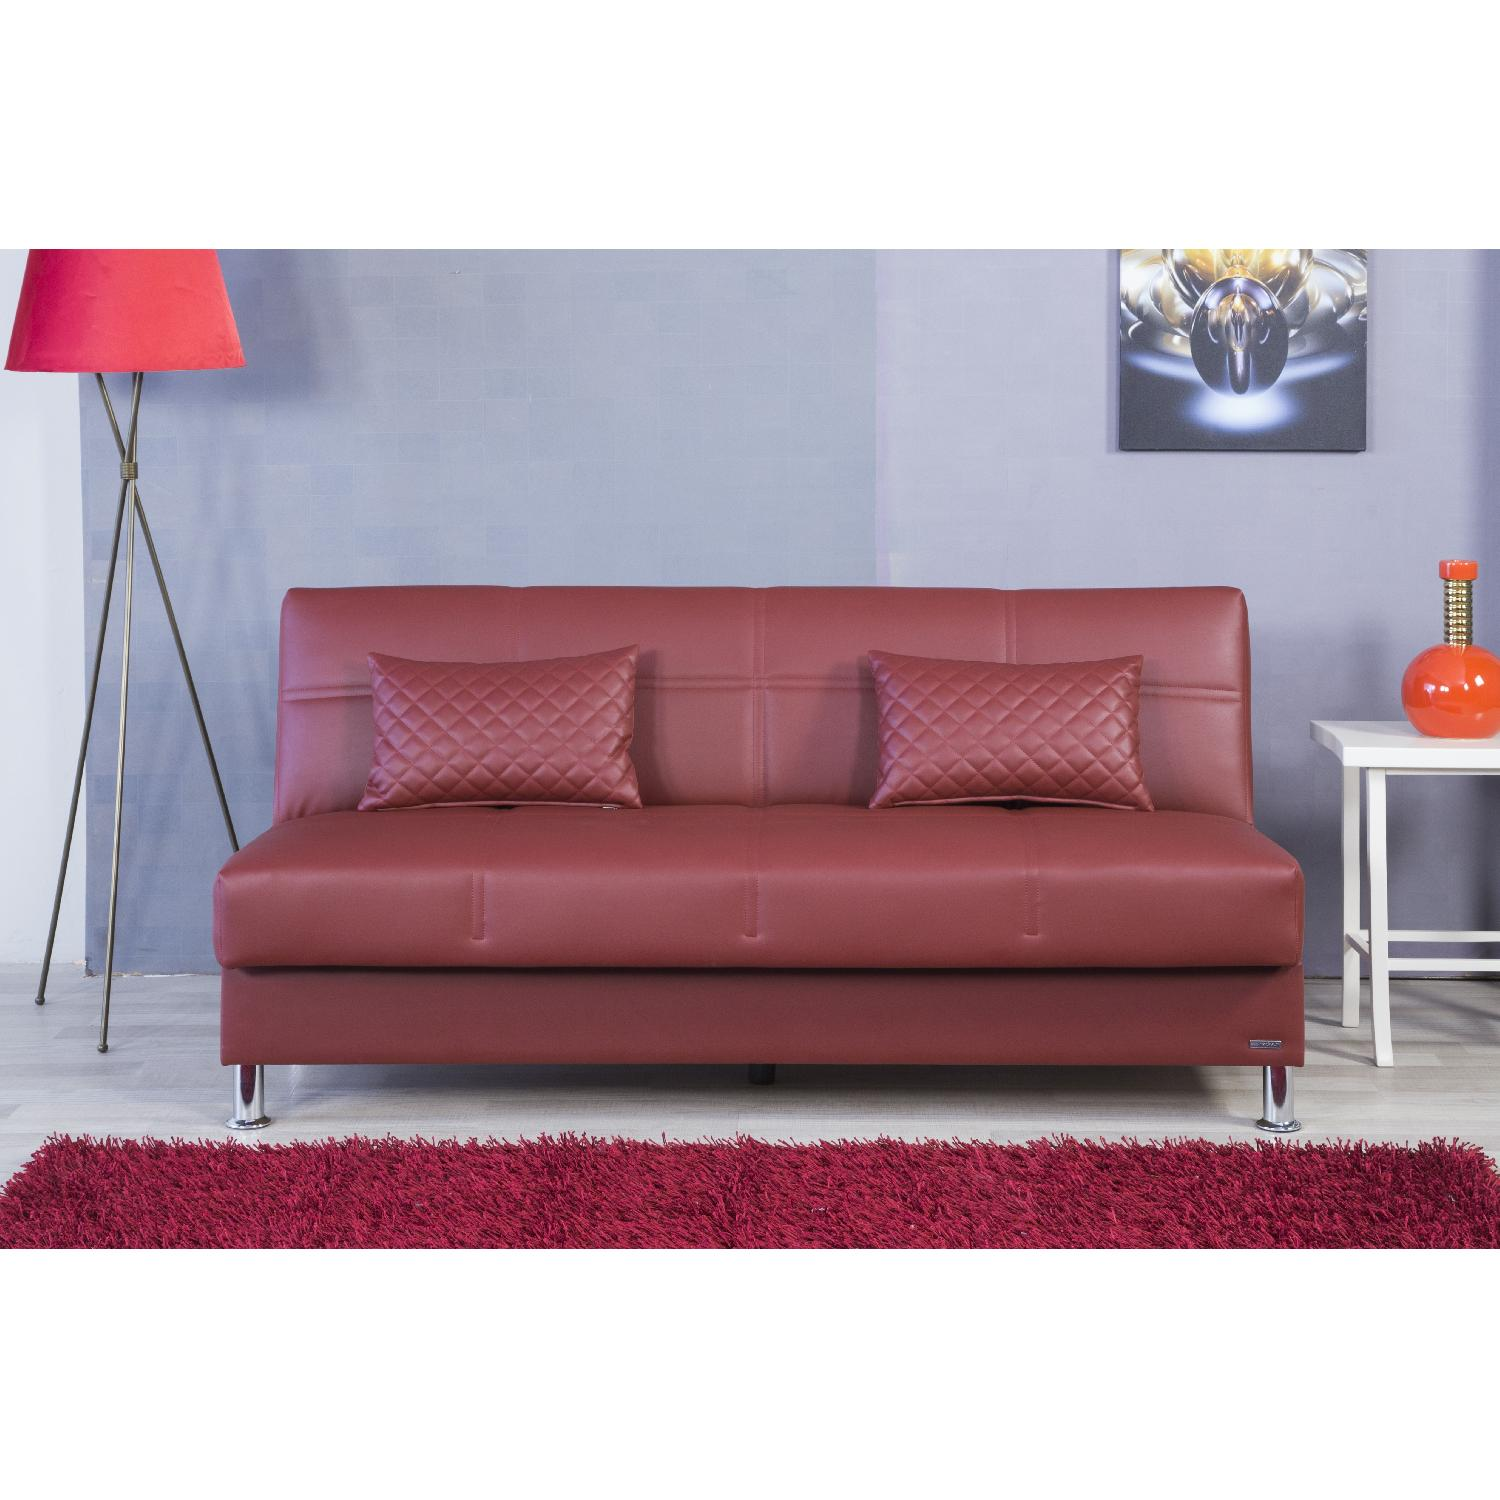 eco rest click-clack w/ storage in red leatherette - aptdeco